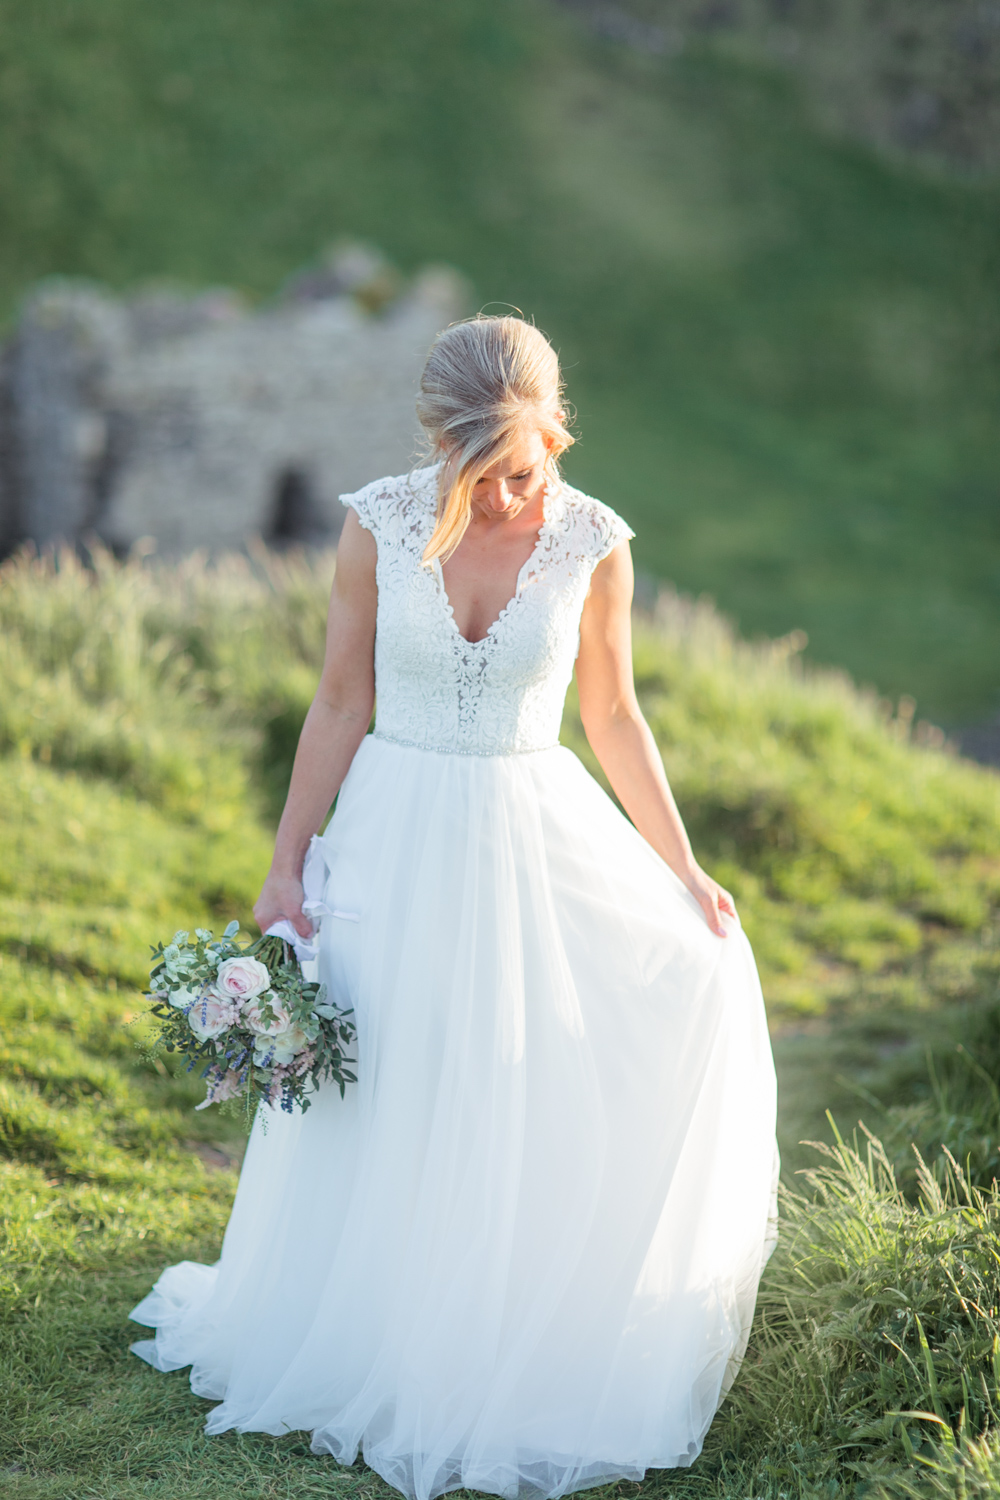 Modern tulle dress with a lace top and a loose summer bouquet with fildflowers